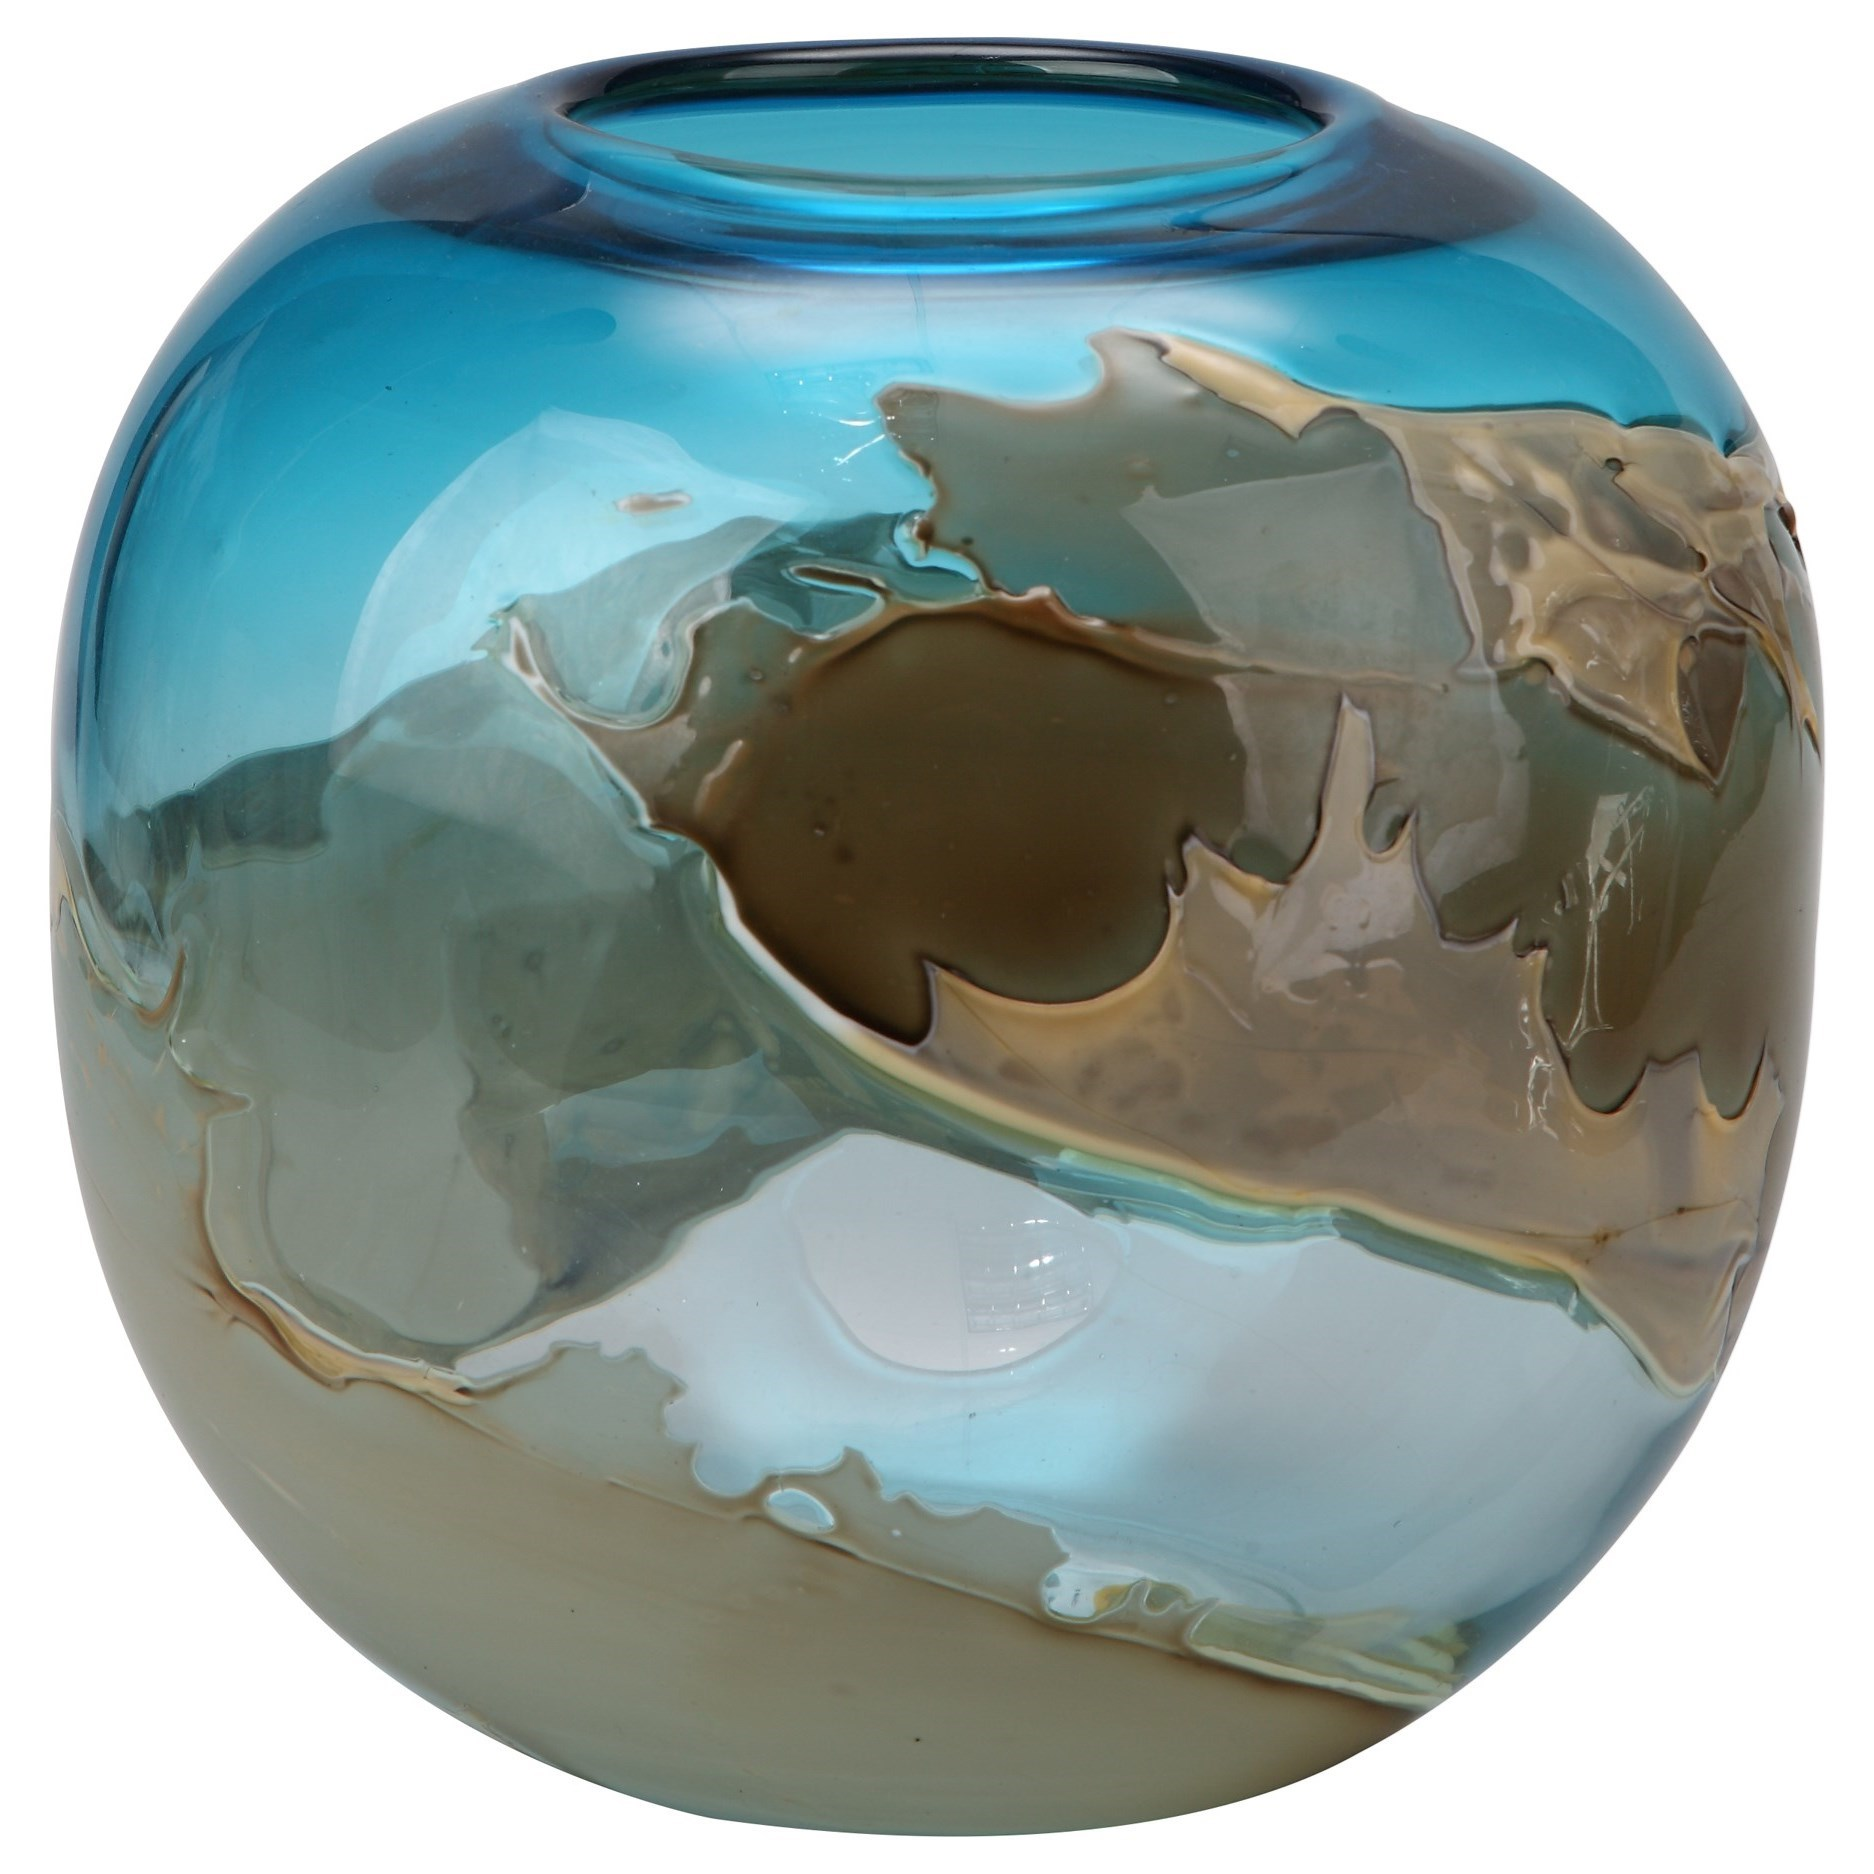 Vases & Urns Mystic Blue Vase Globe by Moe's Home Collection at Stoney Creek Furniture